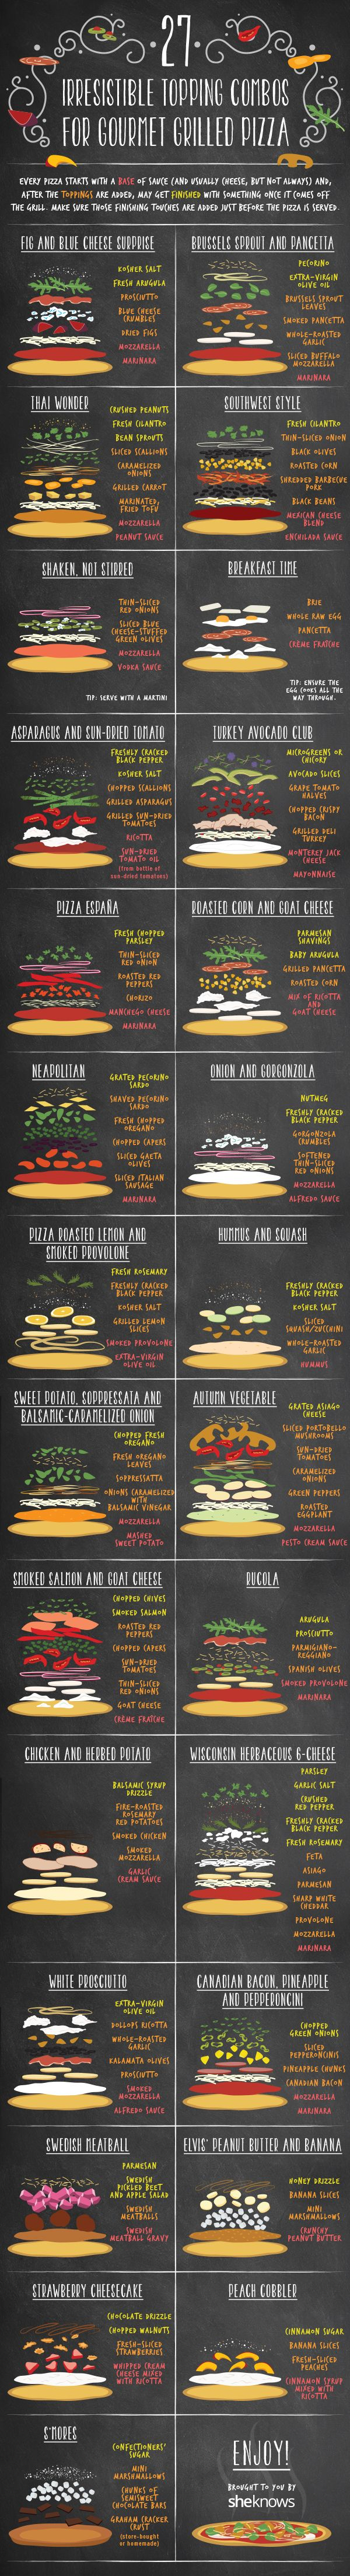 27 Irresistible topping combos for the best grilled pizza (INFOGRAPHIC)…